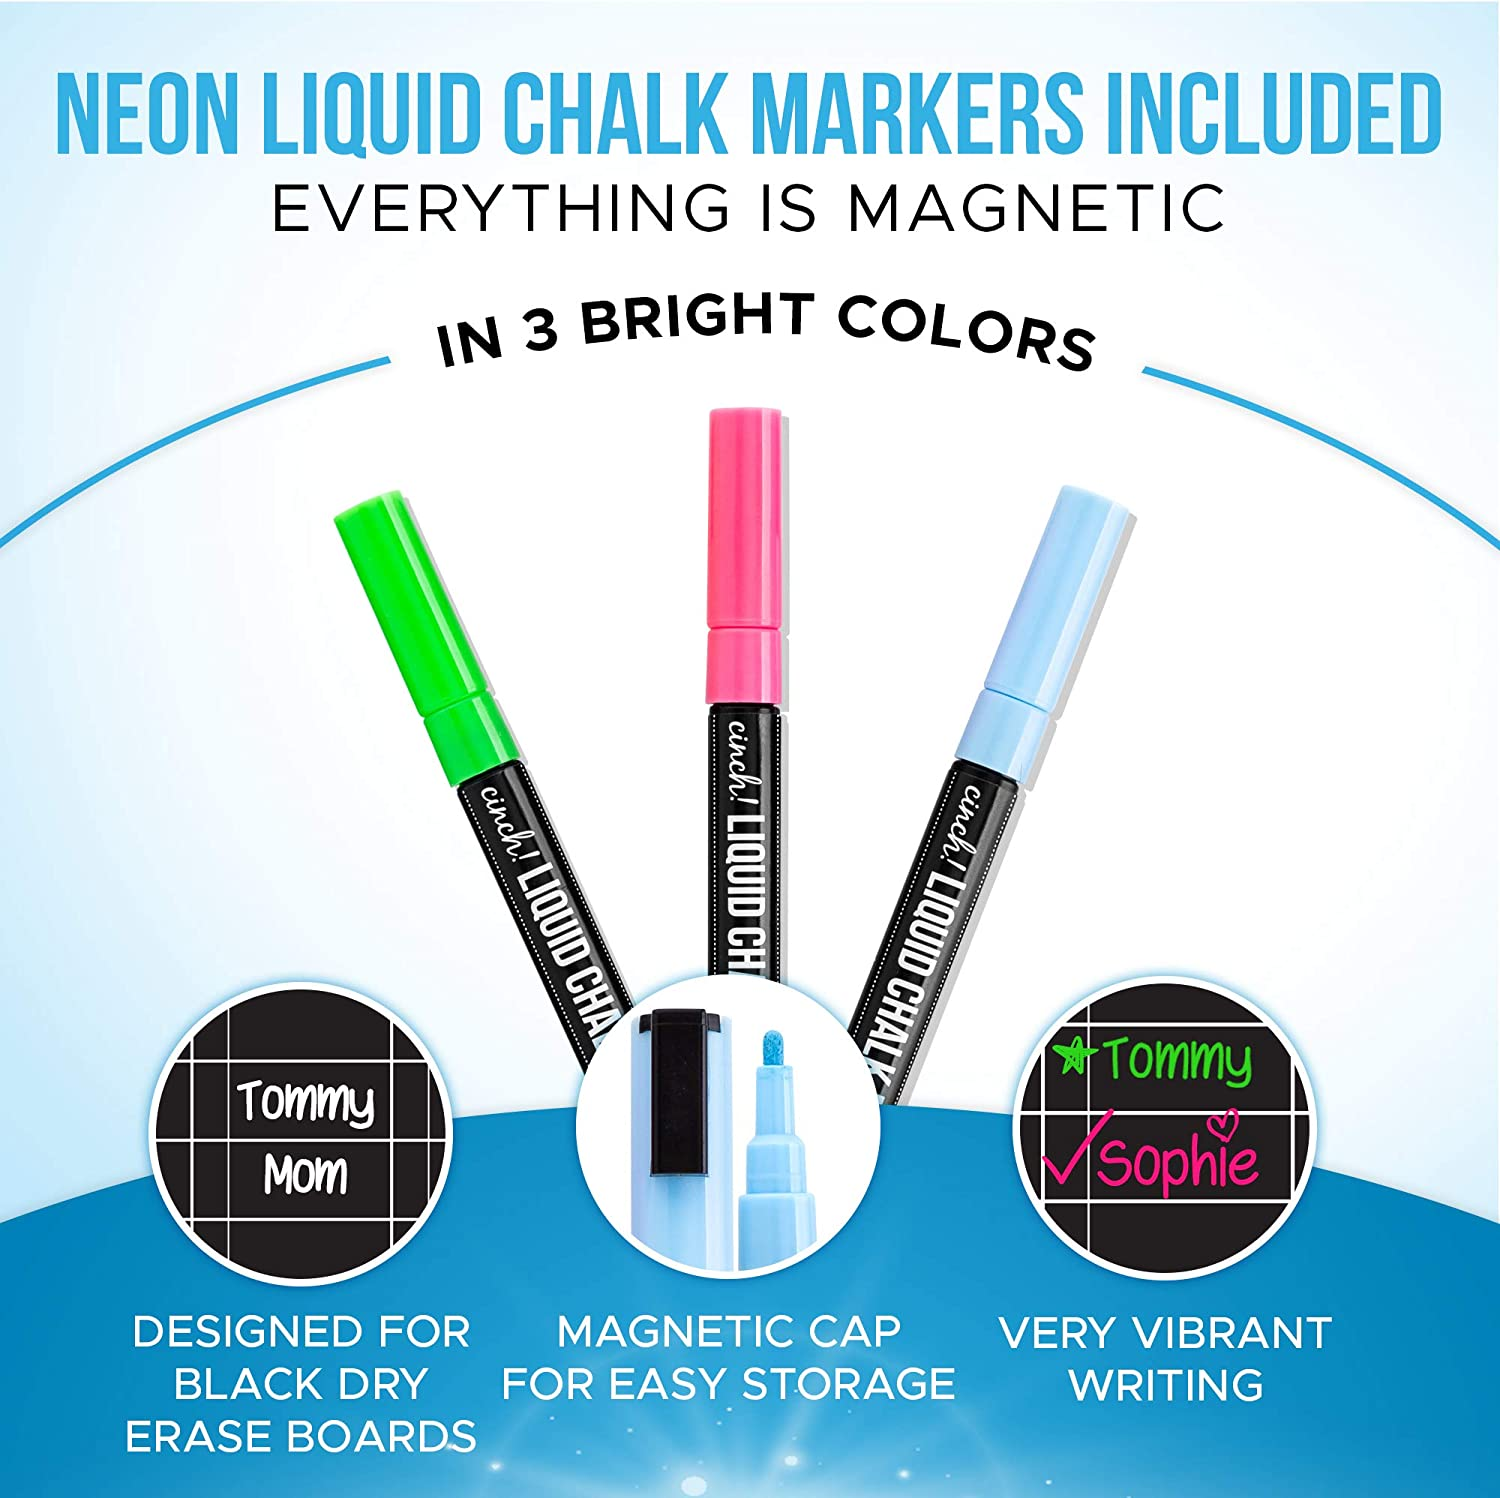 Includes 3 Bright Neon Chalk Markers Fridge 17x12 Magnetic Black Dry Erase Chore Chart for Multiple Kids and Adults Daily Responsibility Rewards Black Board for Toddlers or Teenagers